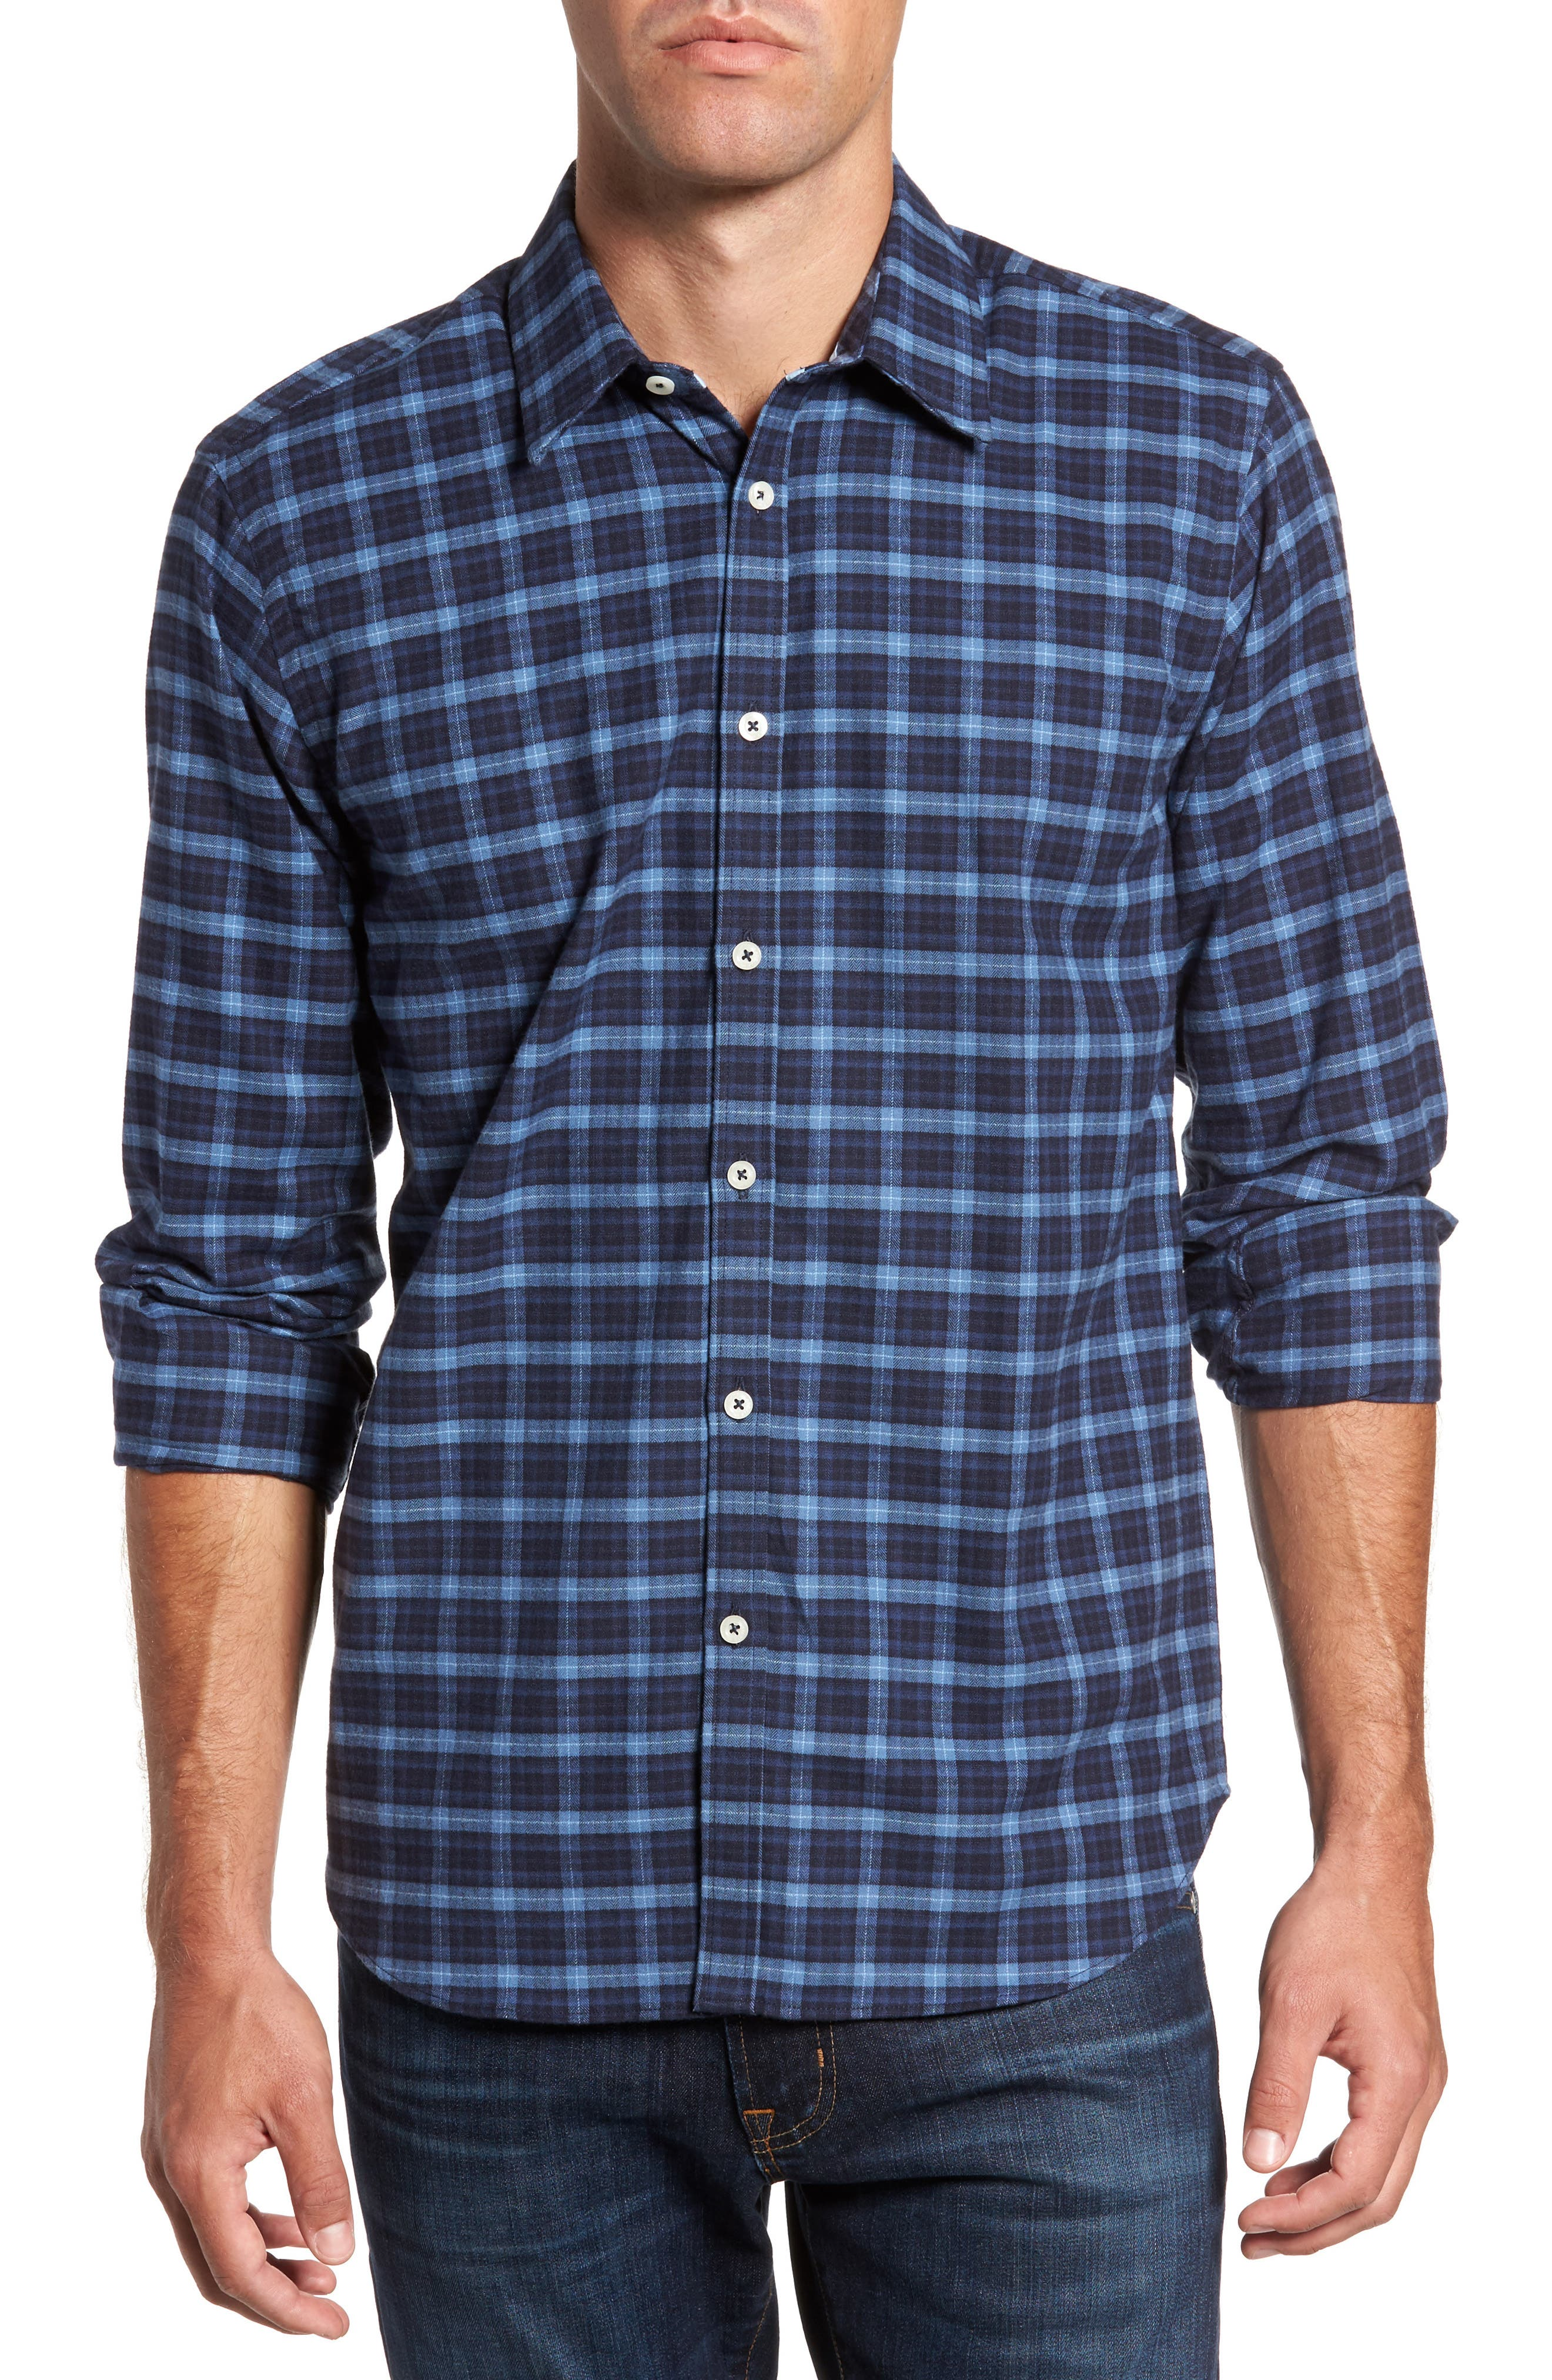 Jeremy Argyle Regular Fit Plaid Sport Shirt